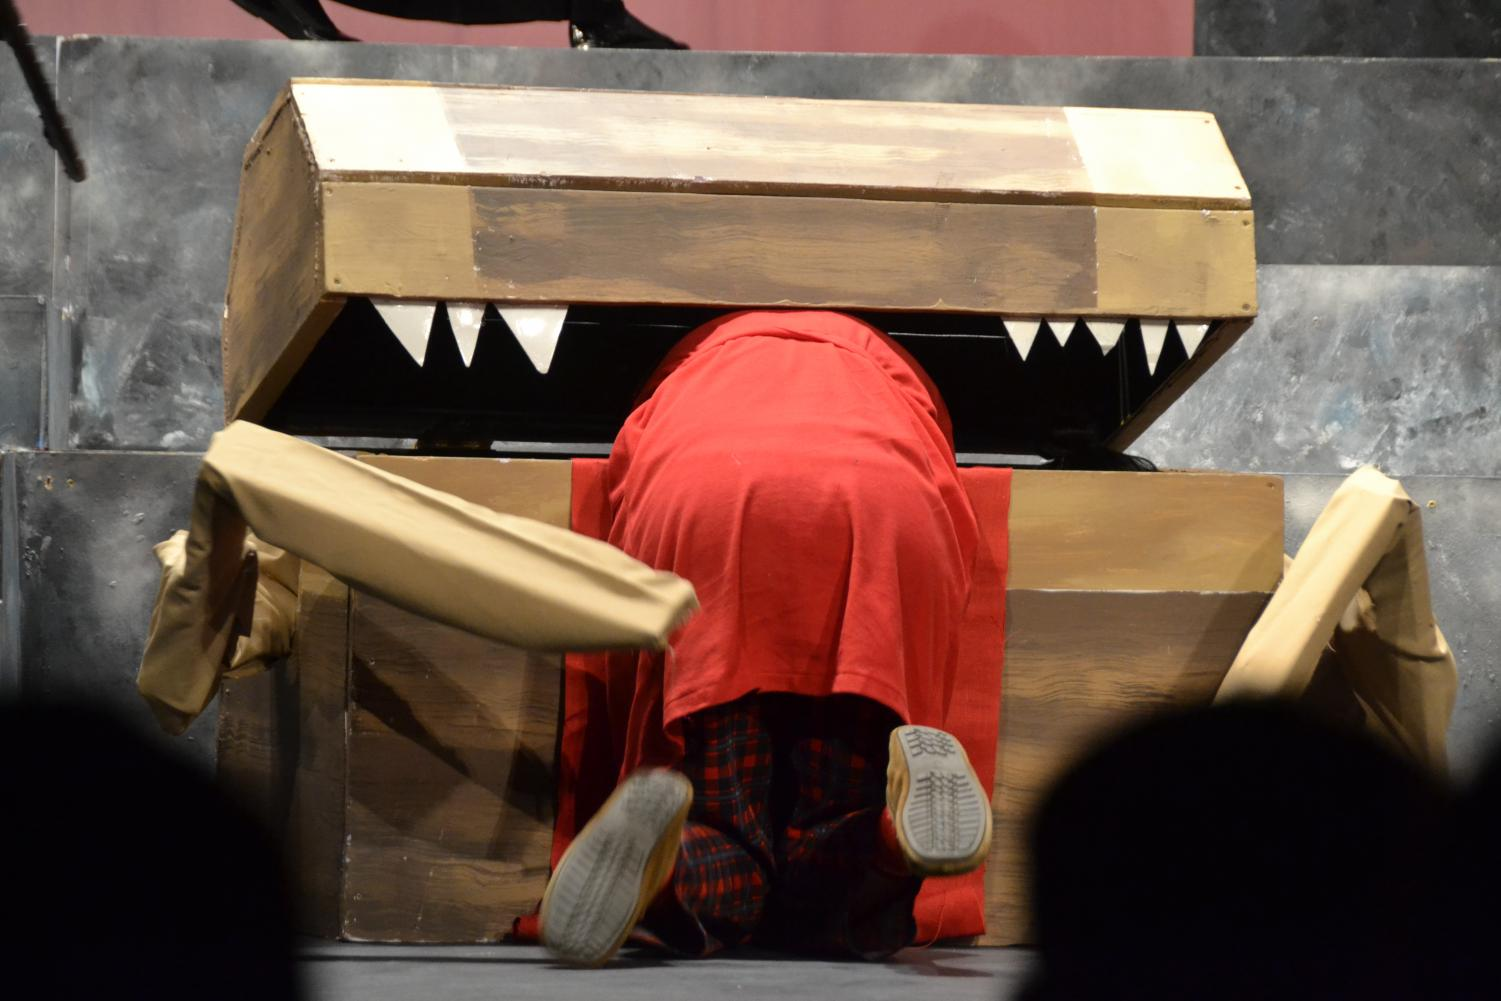 Orcus%3B+overlord+of+the+underworld%2C+gets+too+close+to+a+trap+and+gets+stuck+in+the+mouth+of+a+gigantic+wooden+box.